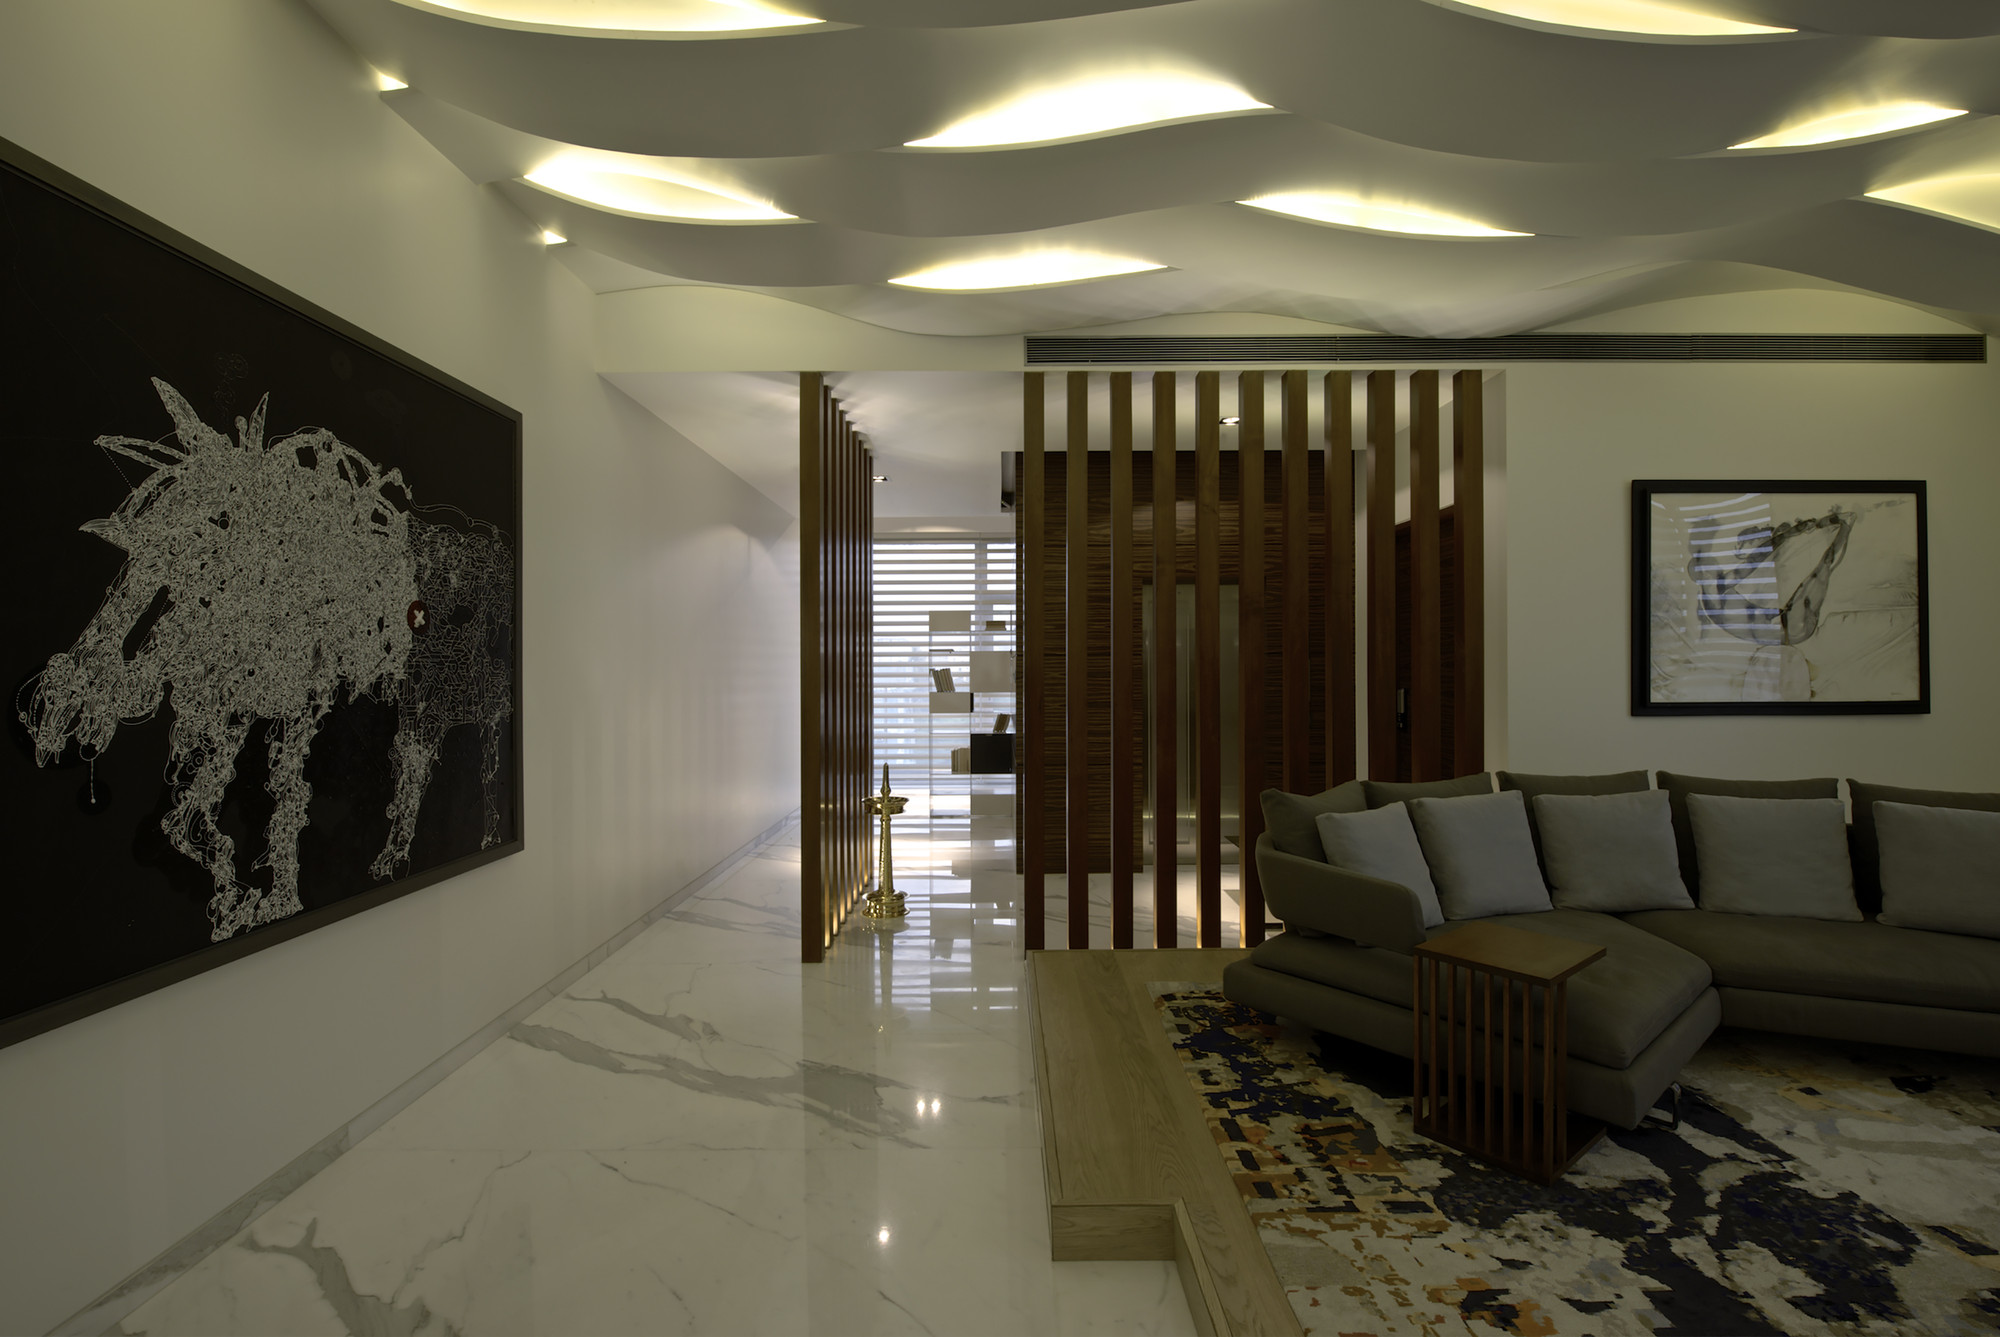 Apartment Interior Design India sdm apartment / arquitectura en movimiento workshop | archdaily